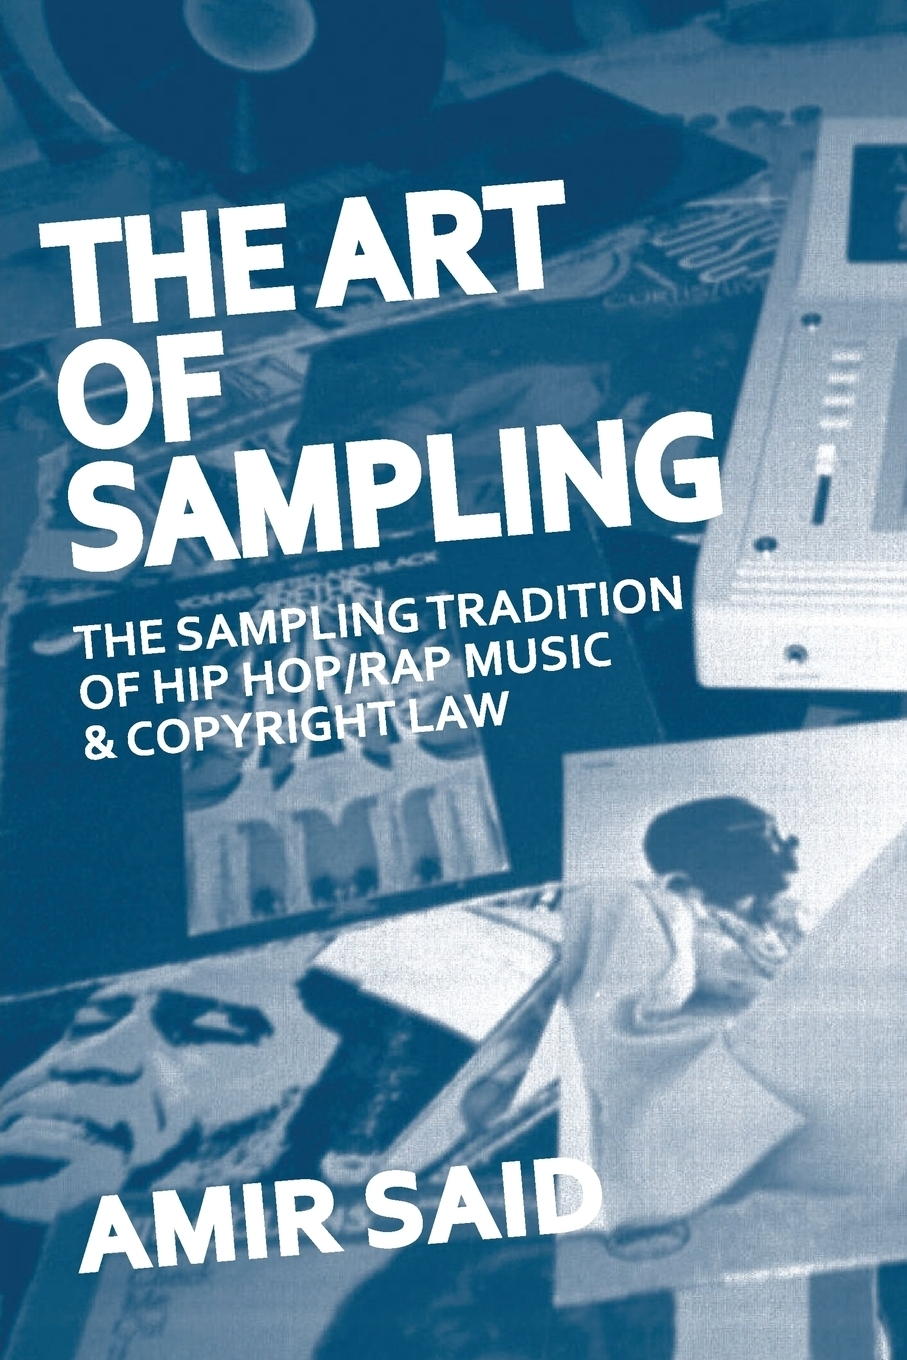 The Art of Sampling. The Sampling Tradition of Hip Hop/Rap Music and Copyright Law. Amir Said